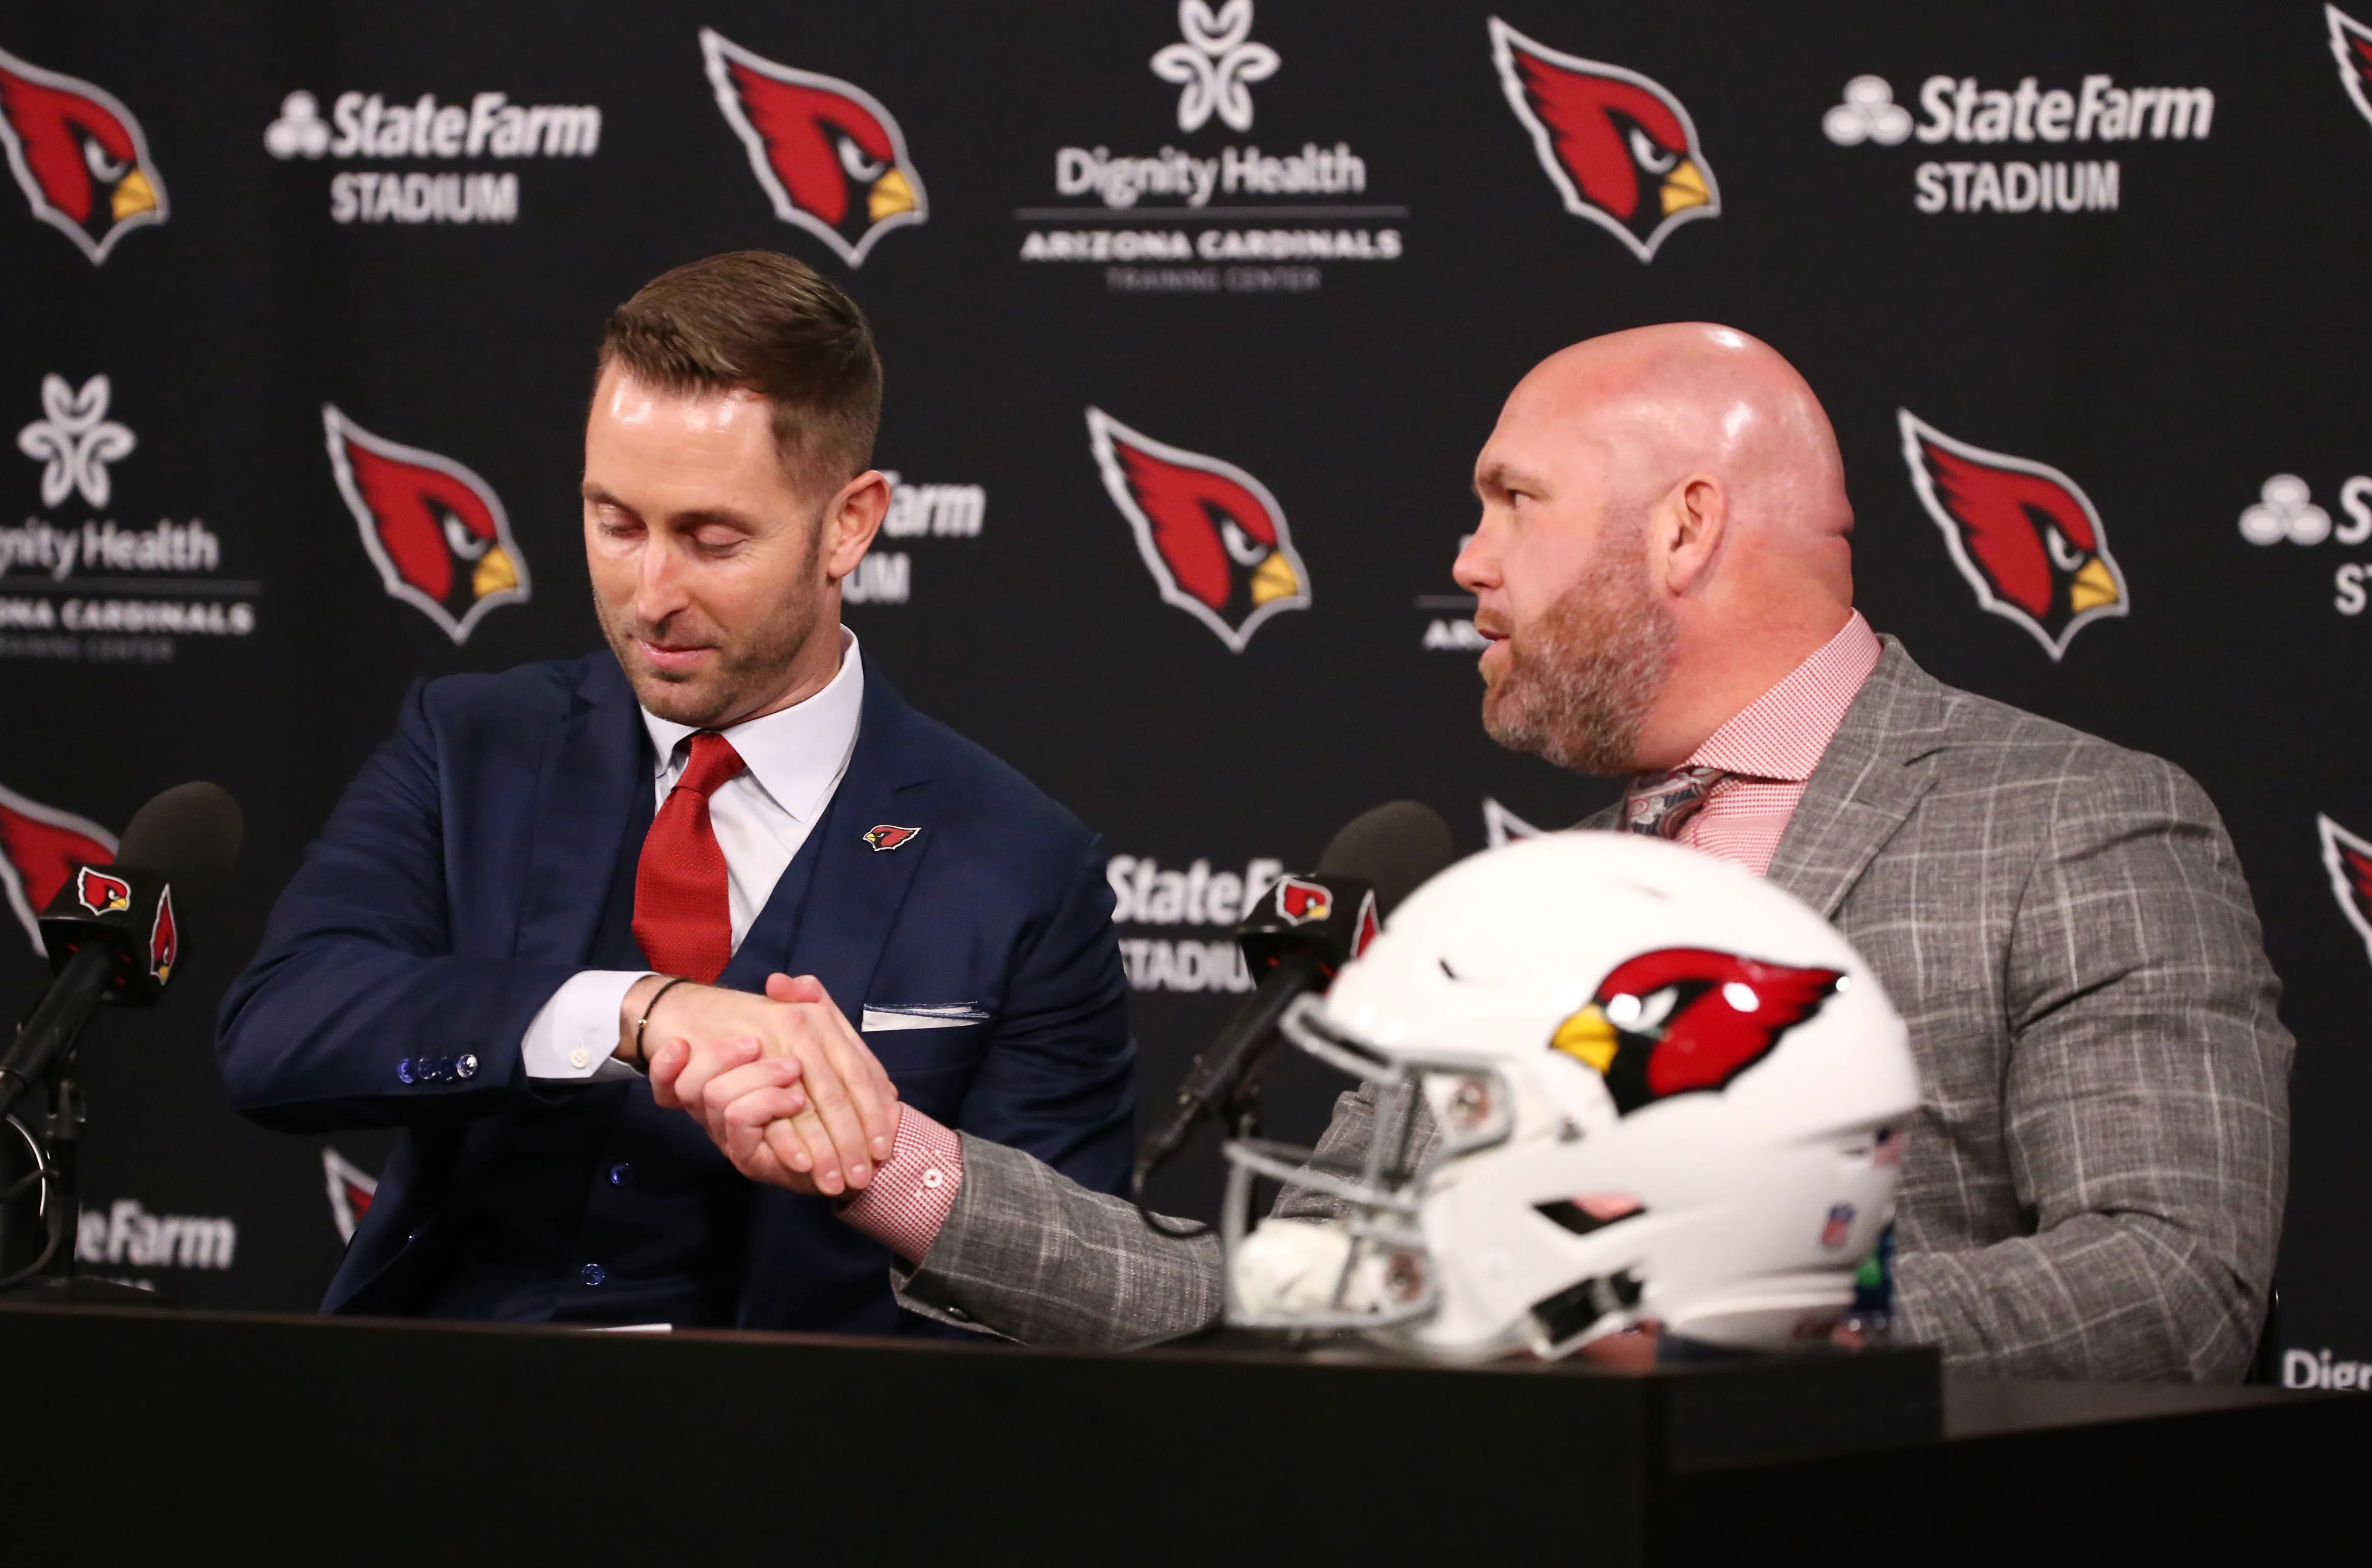 Cardinals coach Kingsbury still searching for offensive ...